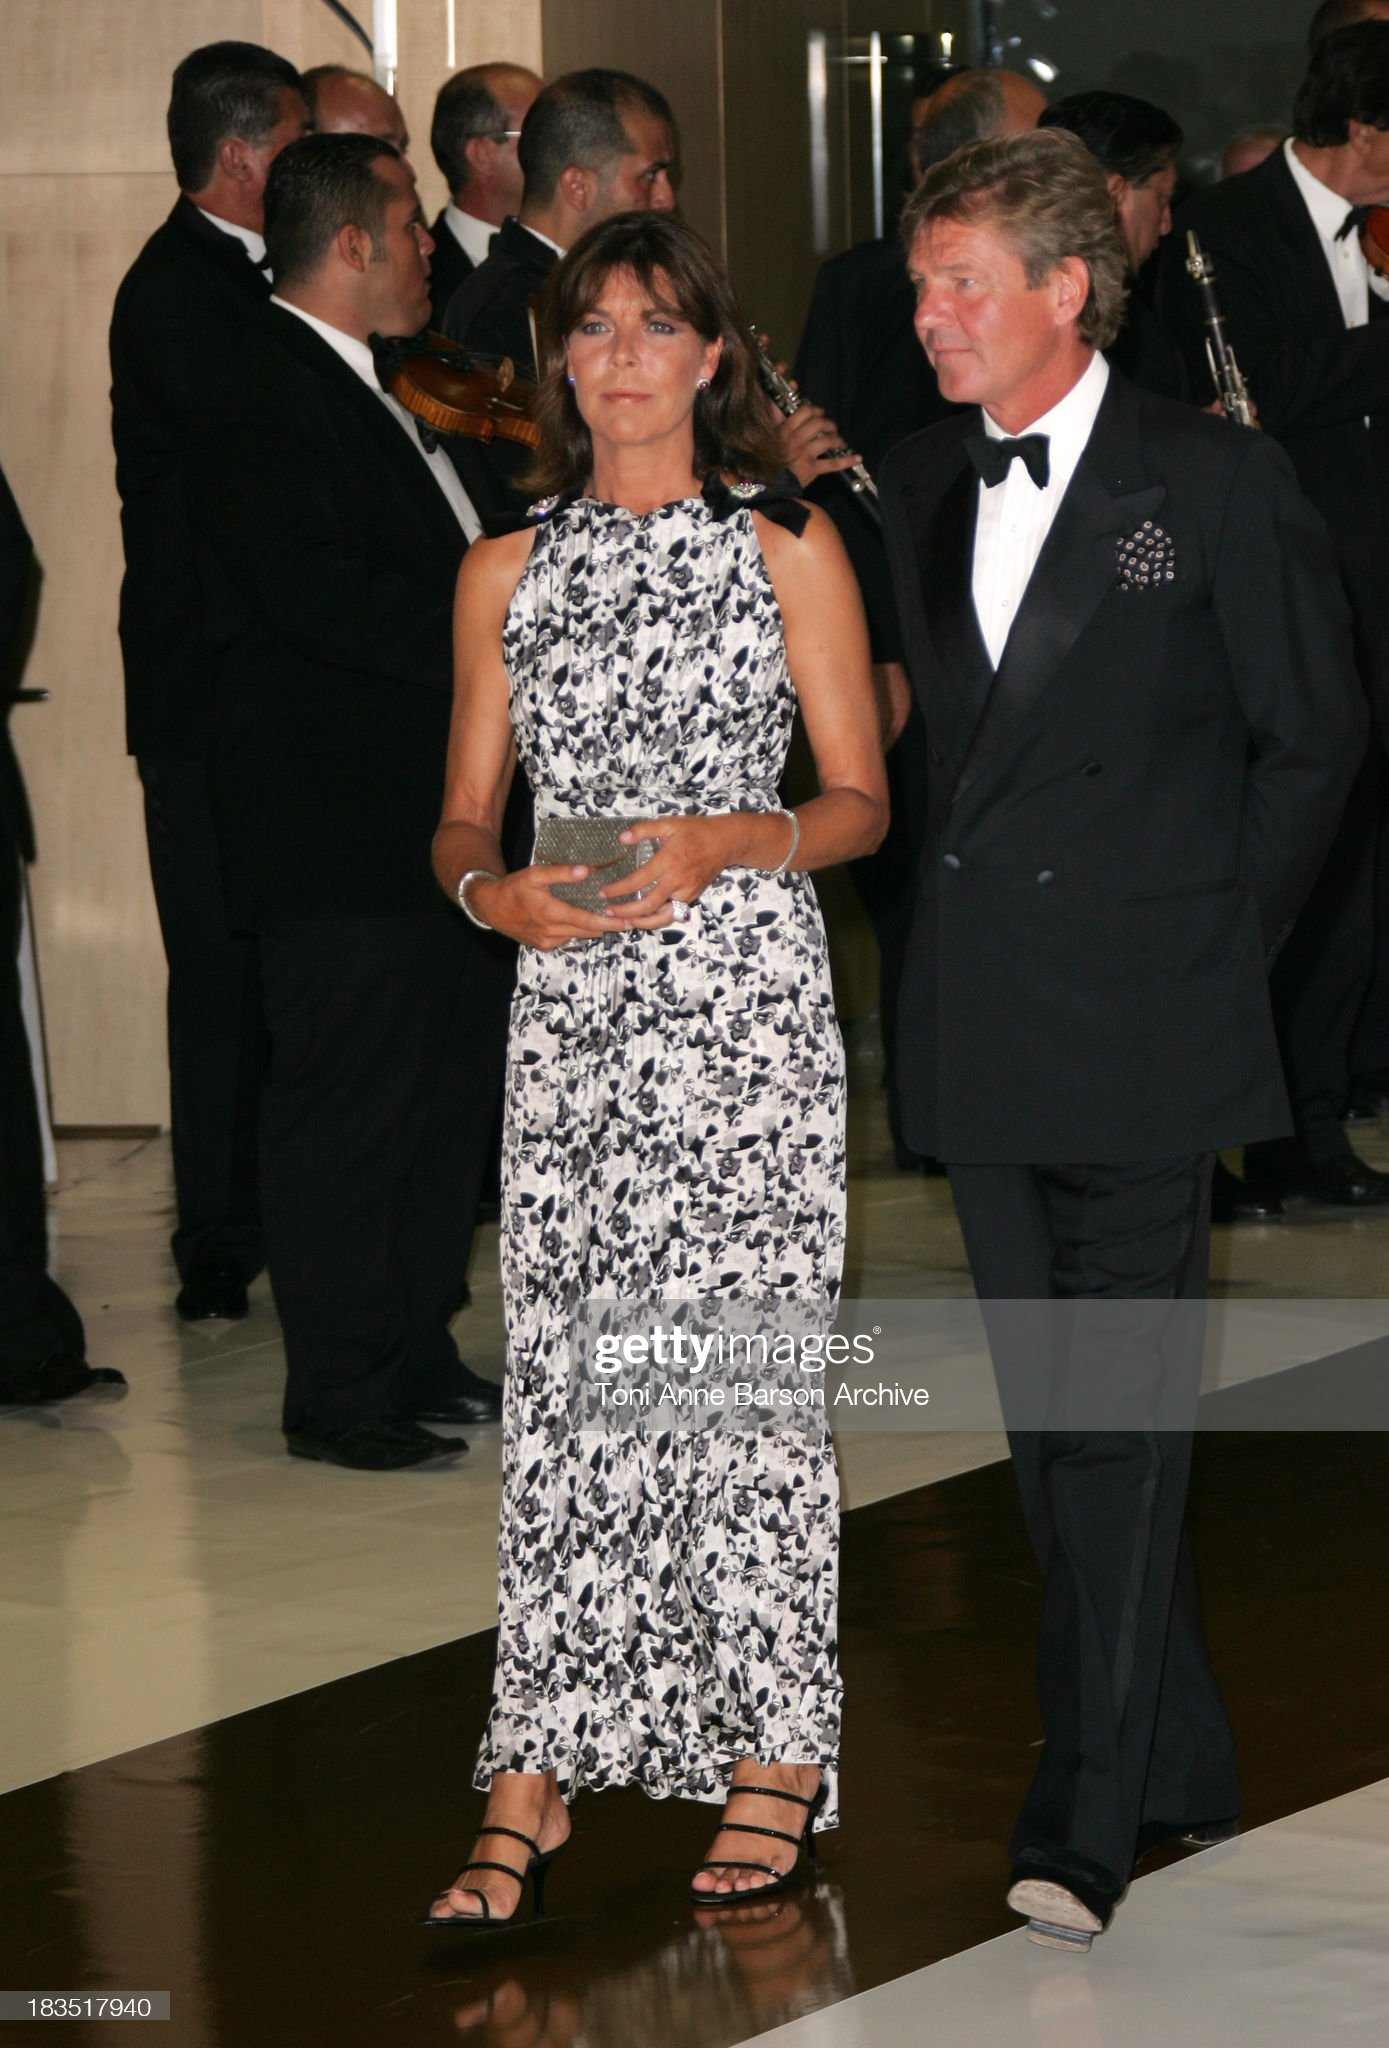 2005 Monaco Red Cross Ball - Arrivals : News Photo